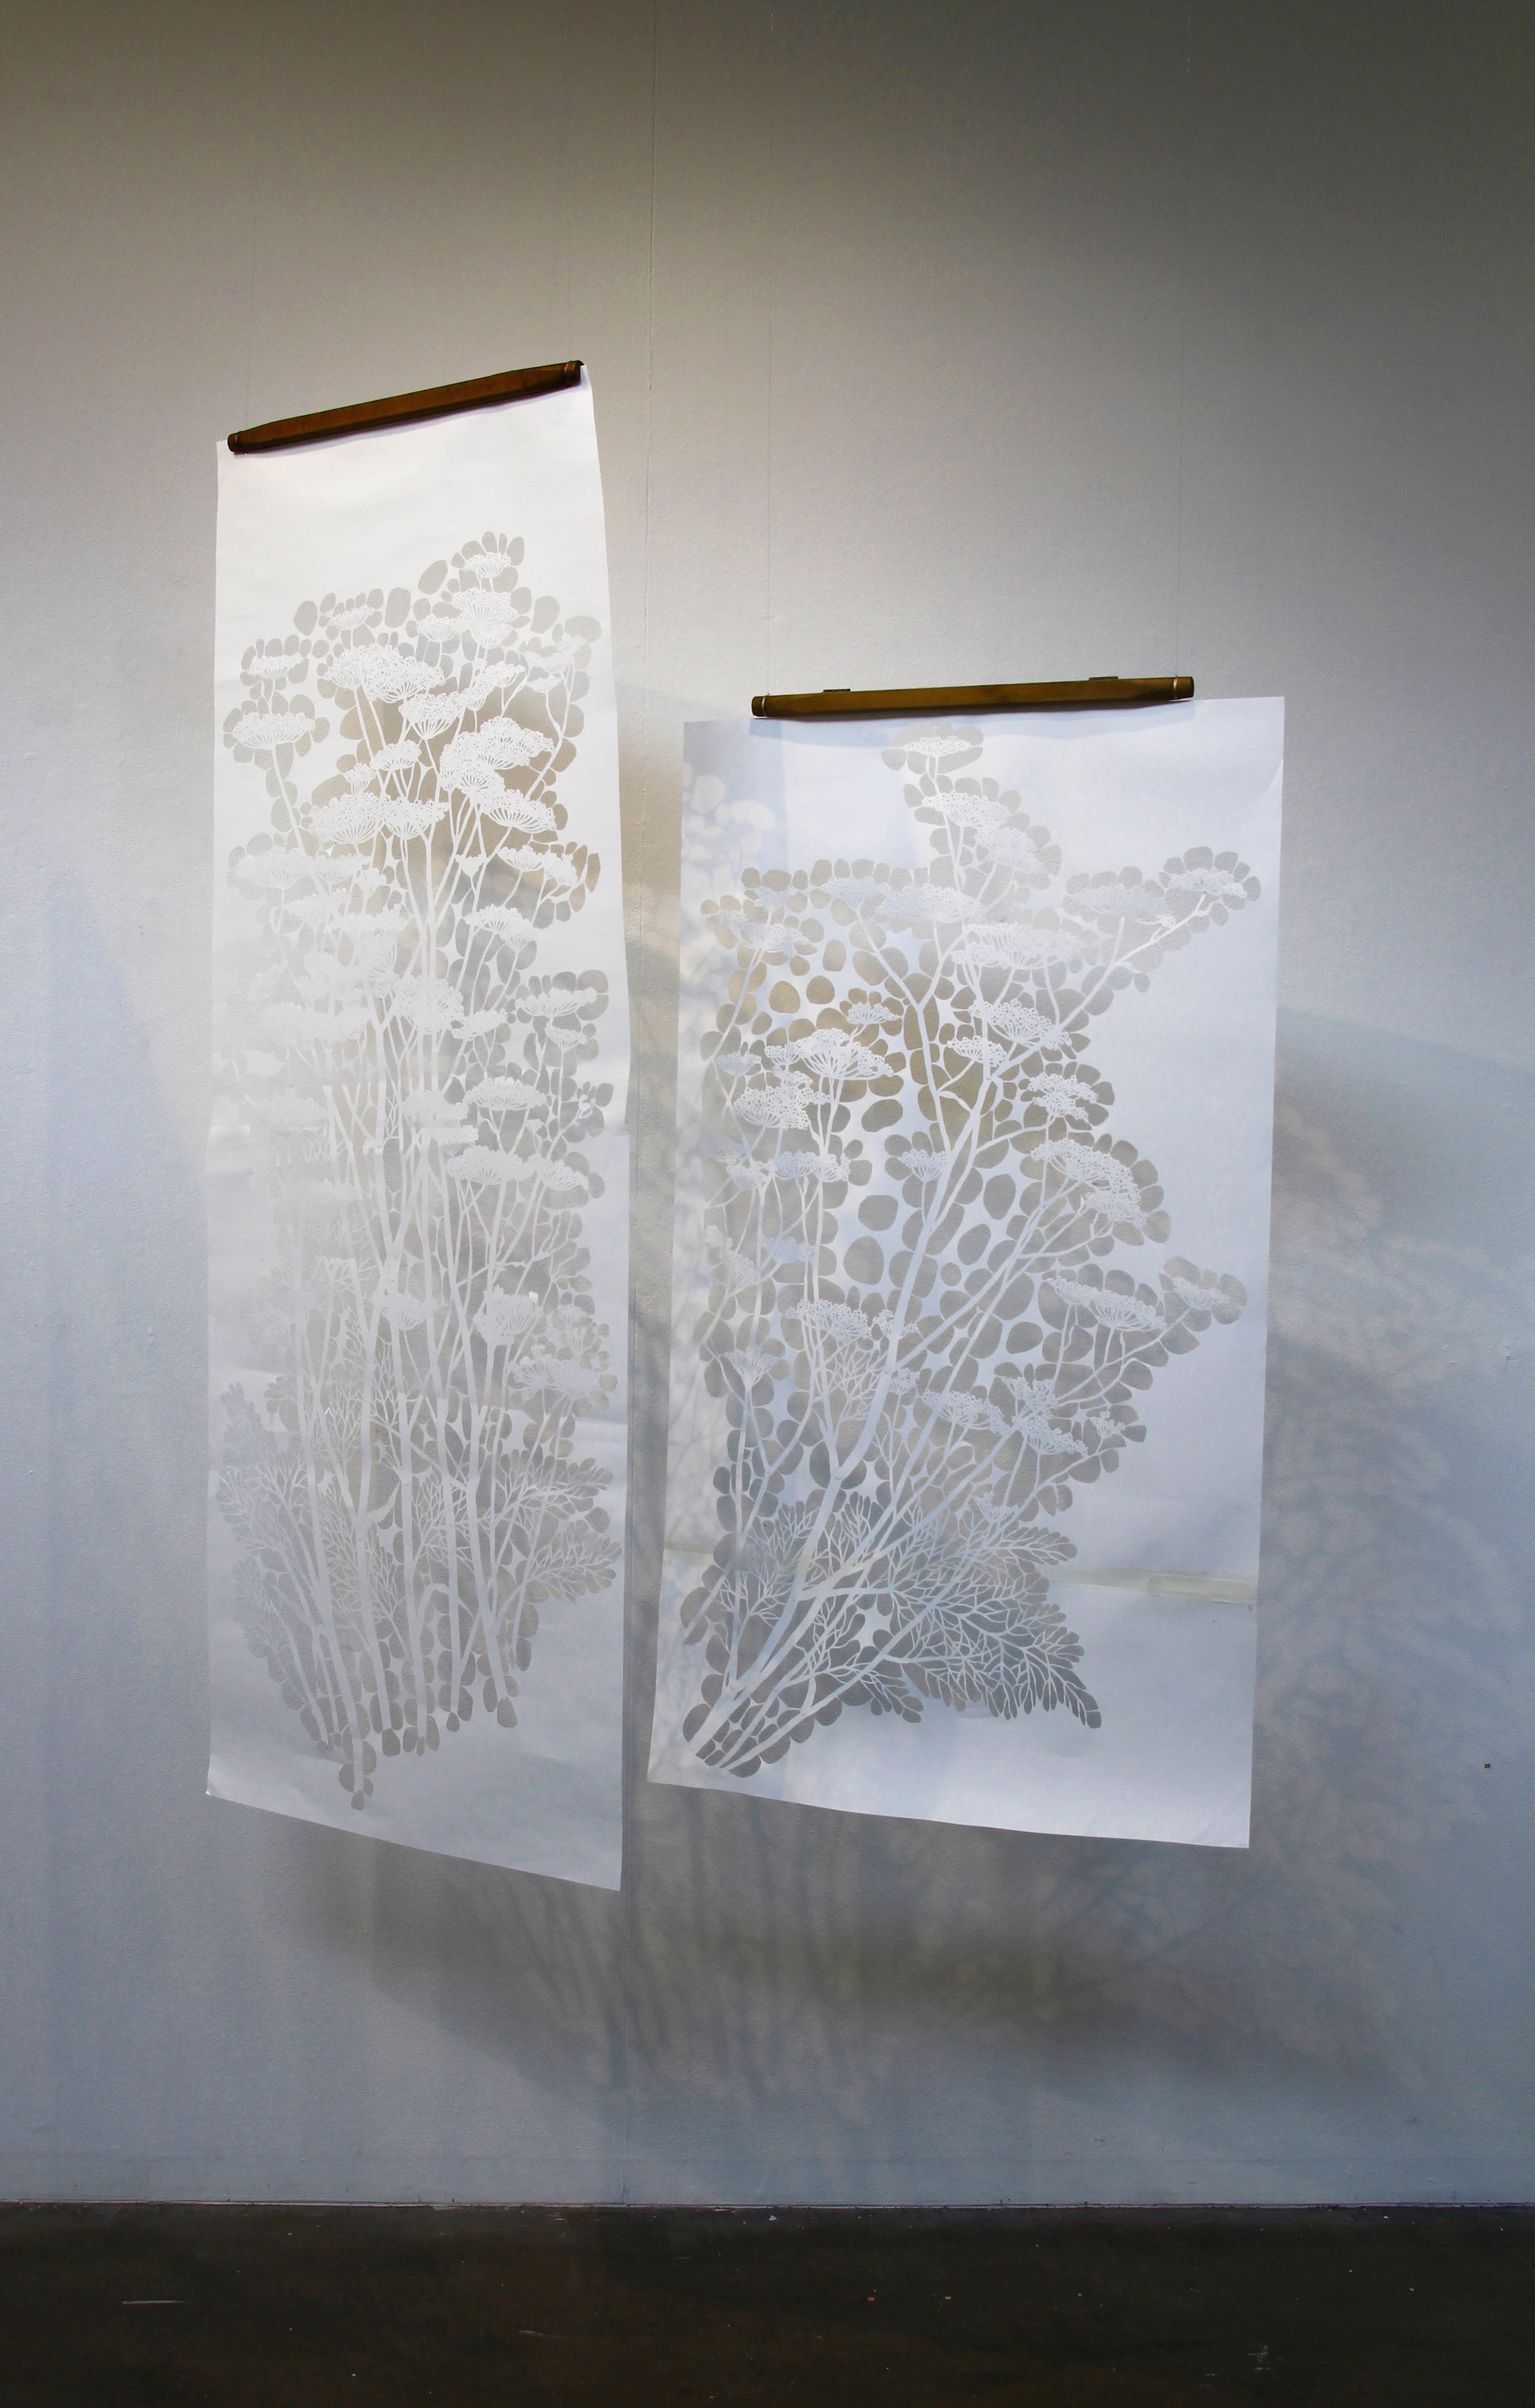 """Wild Fennel Stencils 2017. These are the katagami stencils I cut to make the work """"Along the Murrumbidgee"""". They are just a tool in the process but they are beautiful too. Dpeicts Wild Fennel, which is a weed in Canberra. On display at """"Naturescapes"""" solo exhibition, Canberra, 2017."""